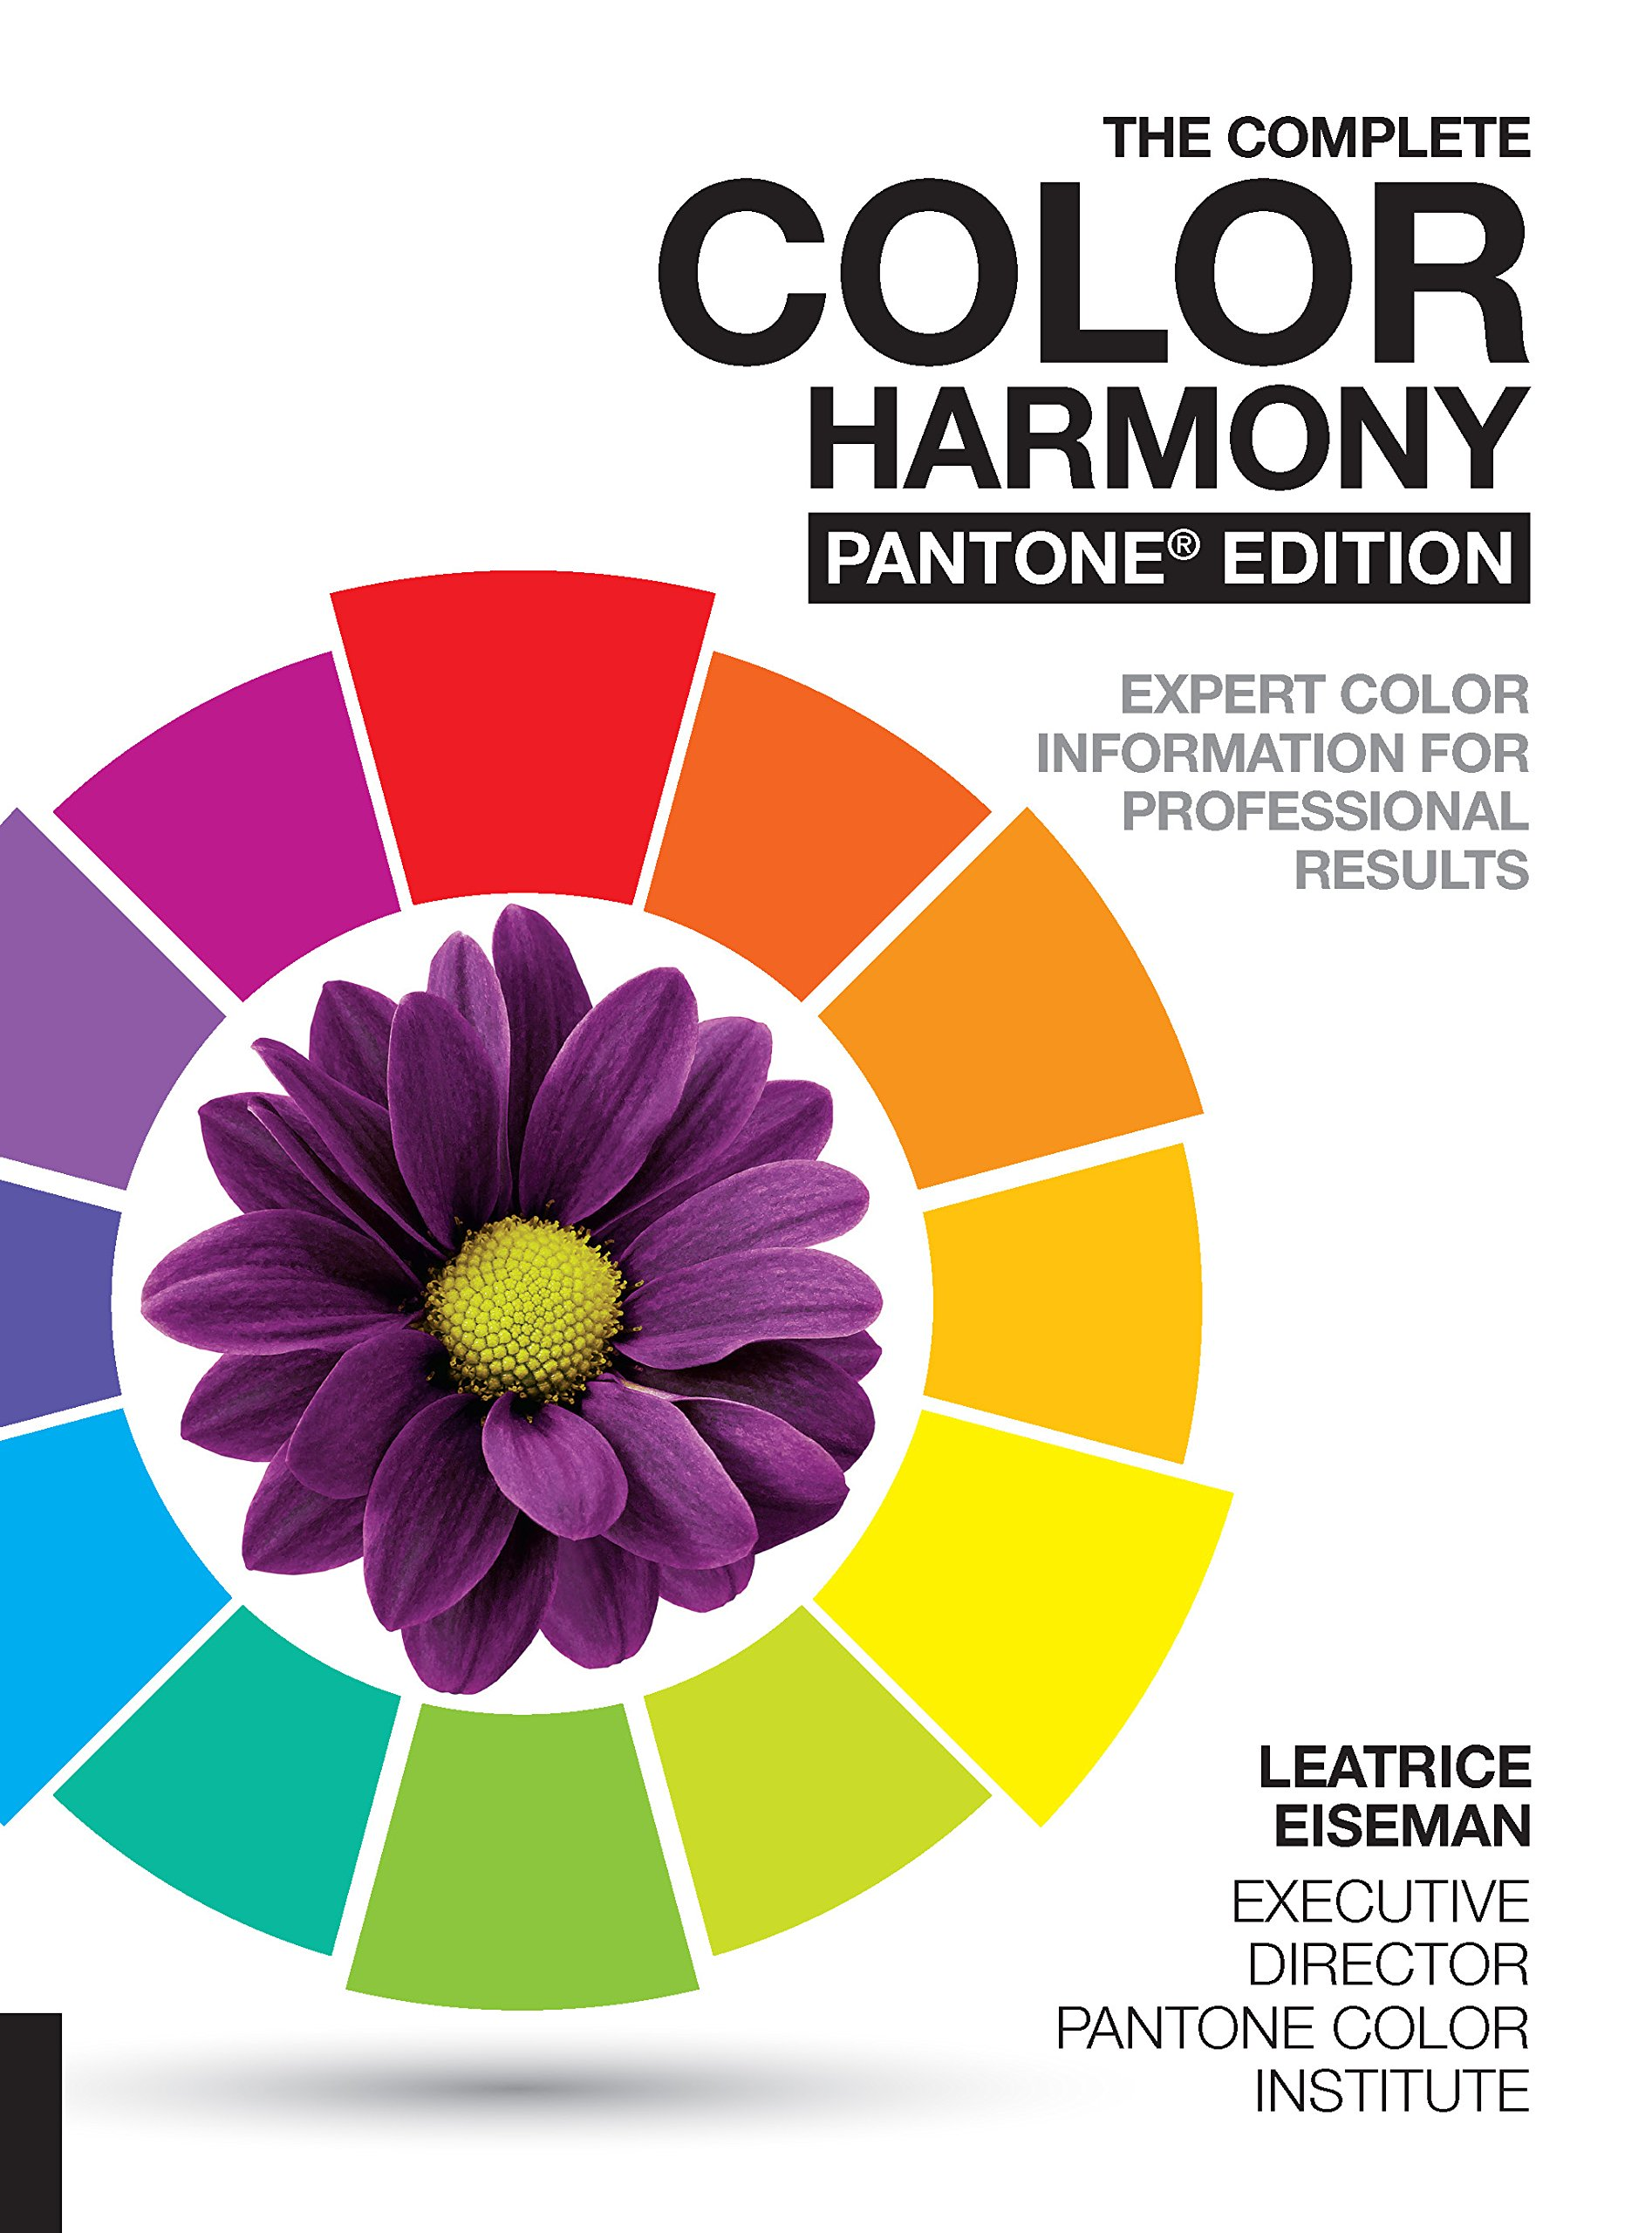 The Complete Color Harmony Pantone Edition Expert Color